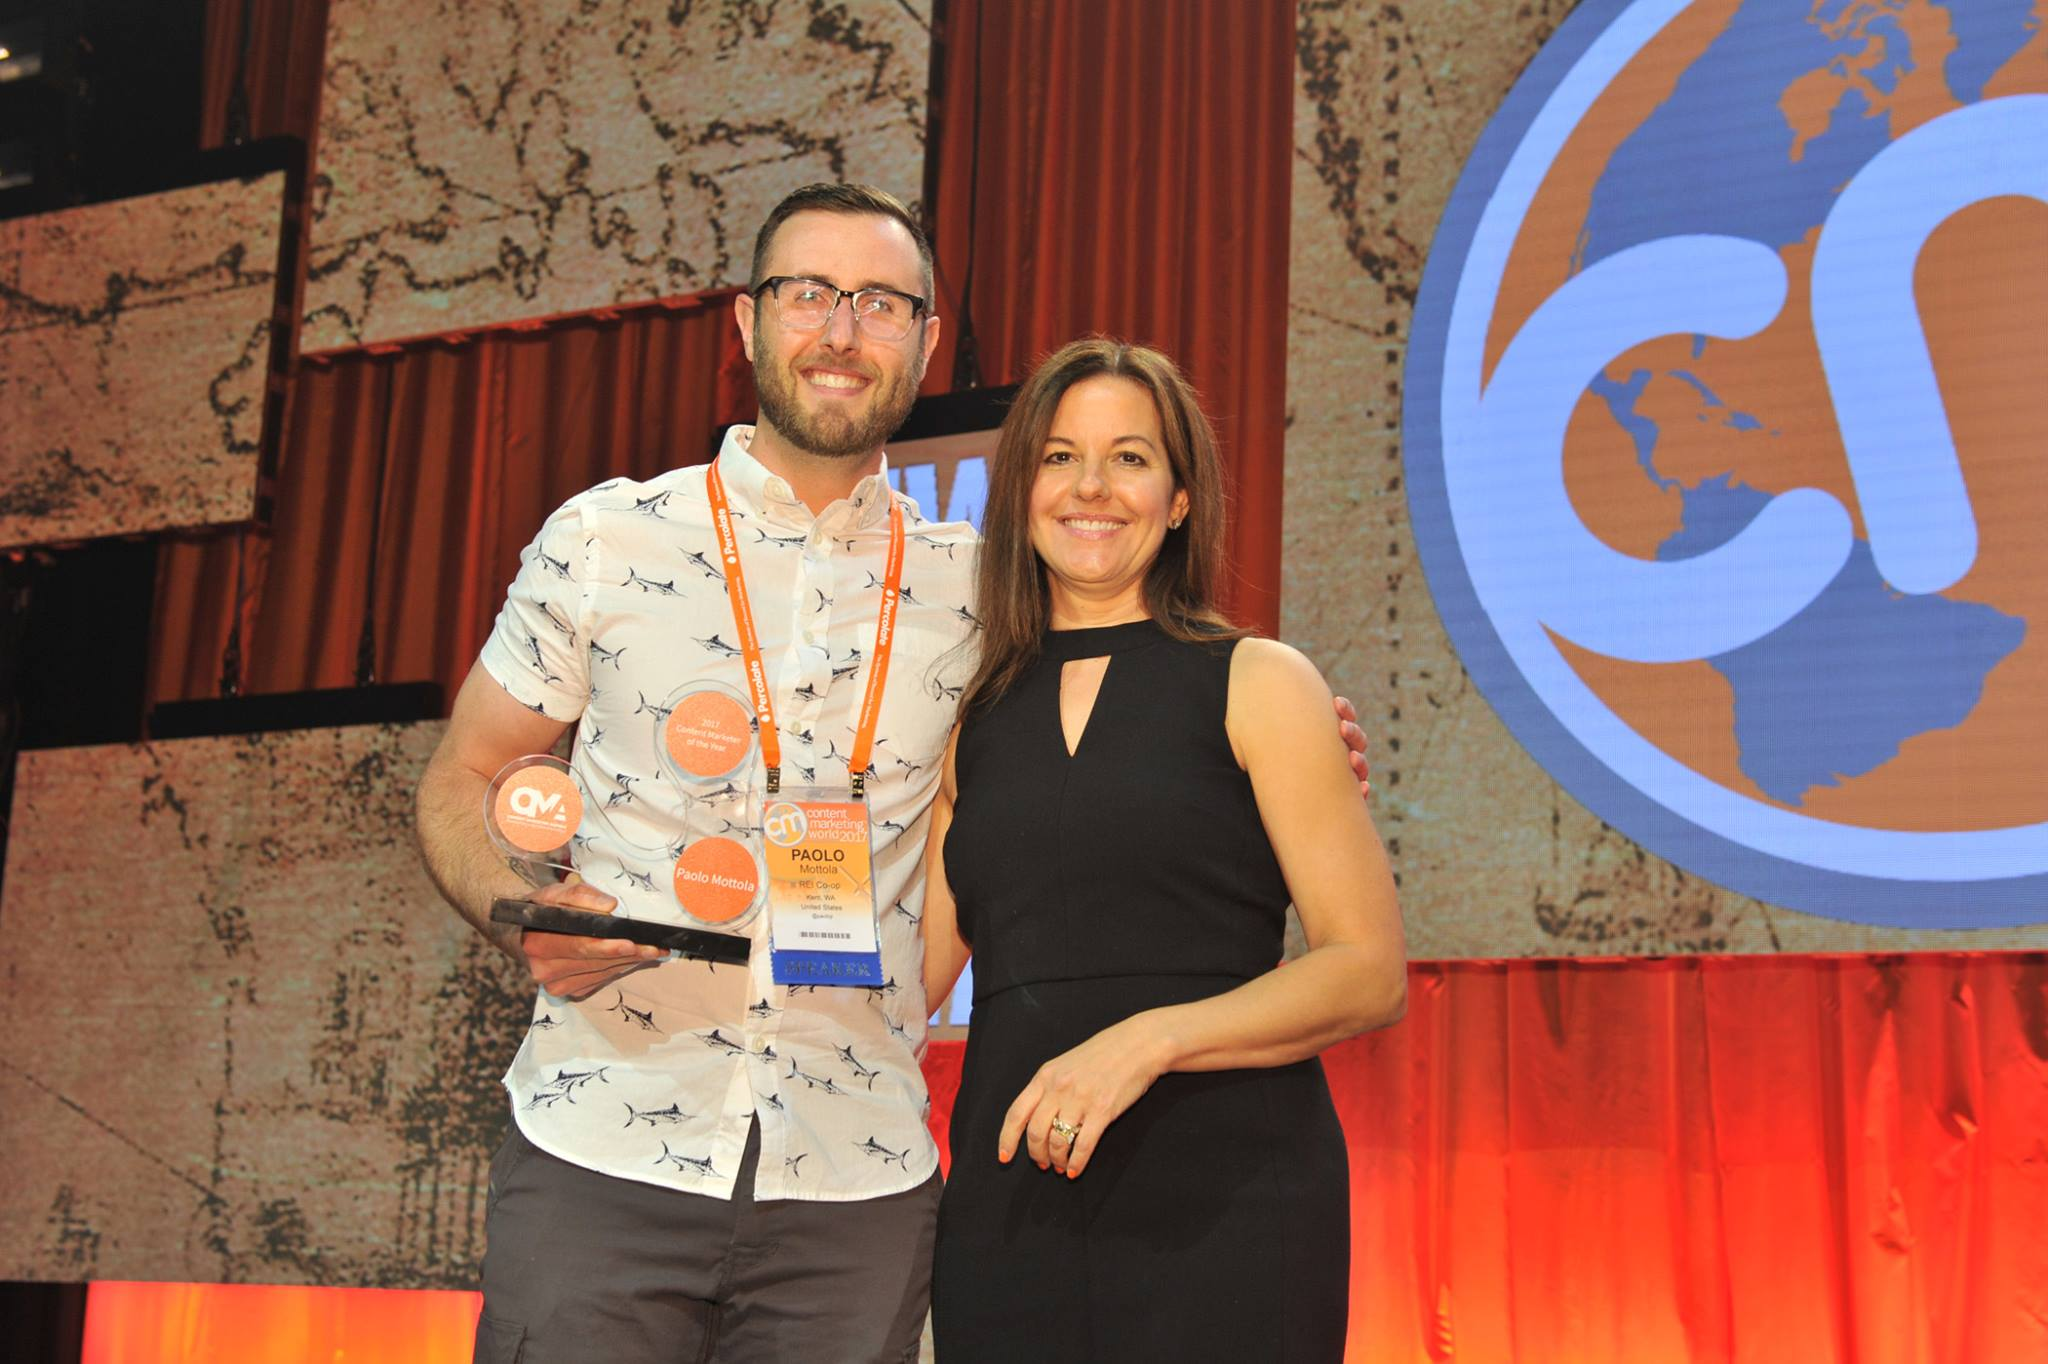 2017 Content Marketing Awards Top Prize Winners Announced Live at #CMWorld